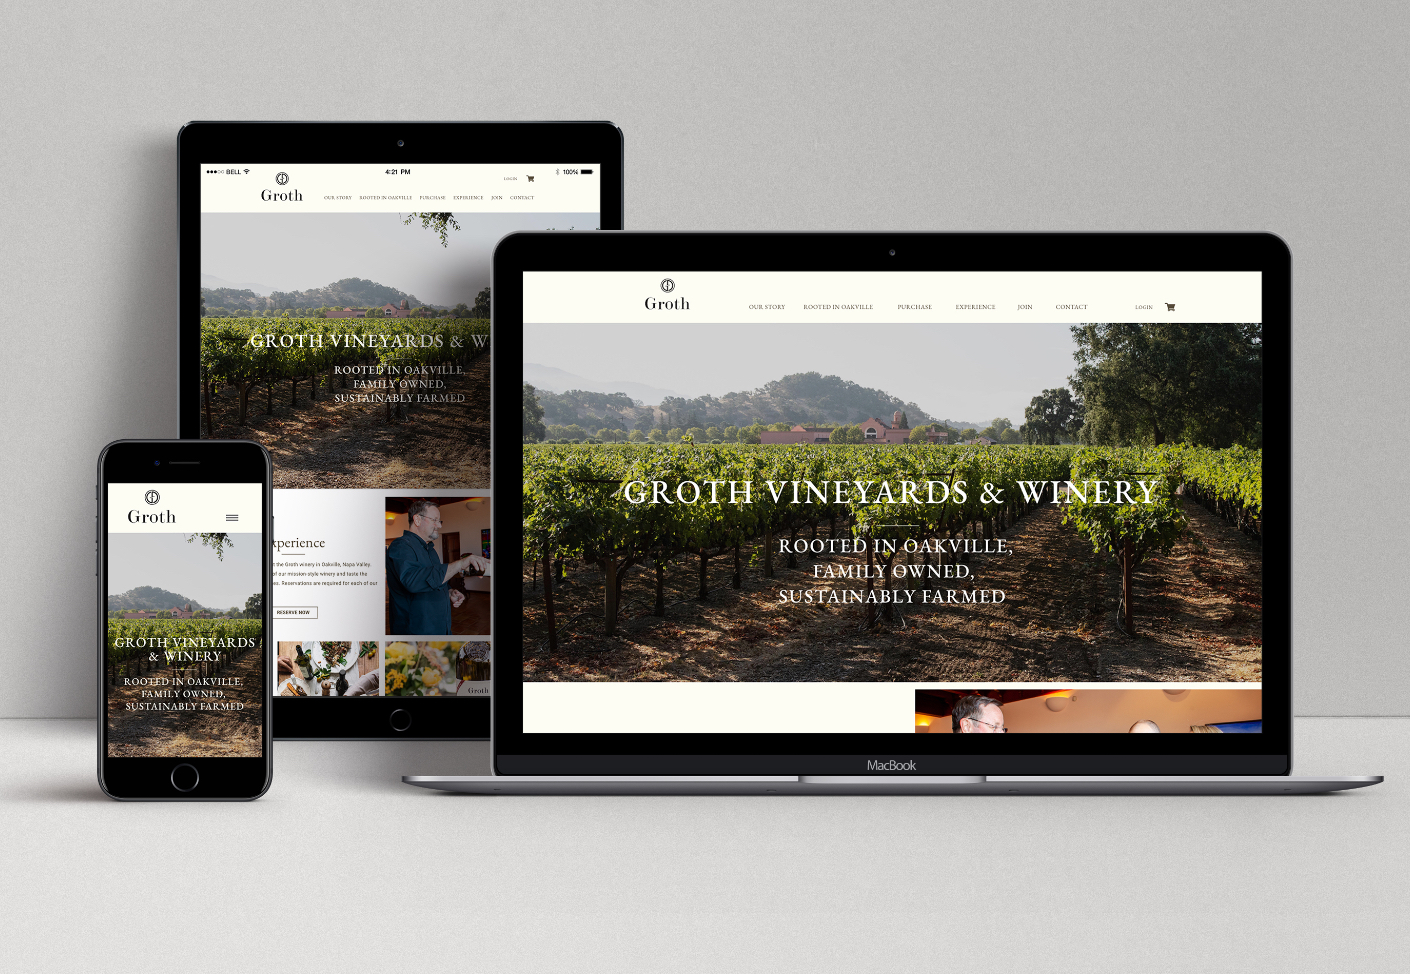 Groth Vineyards & Winery Responsive Website Design